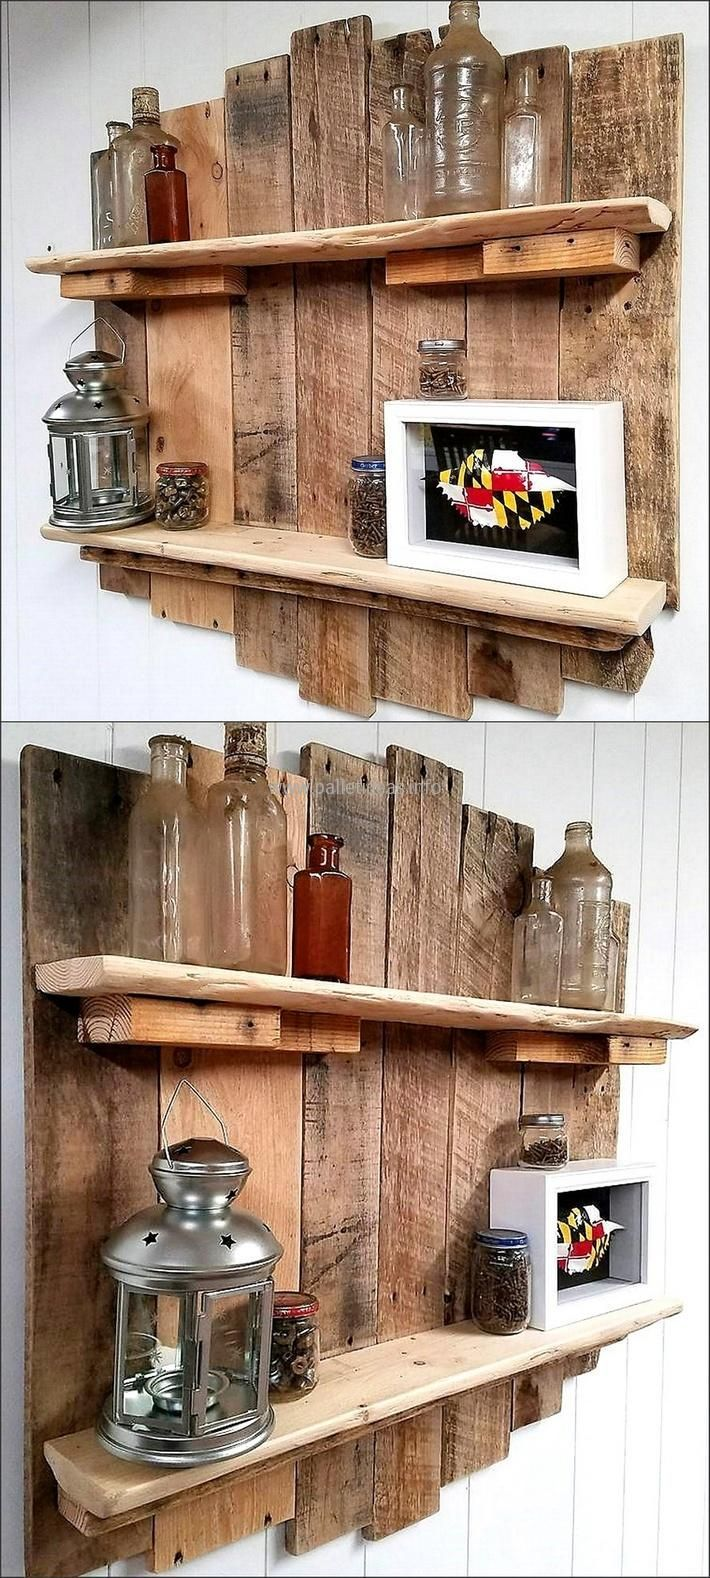 Best 25+ Unique wood furniture ideas on Pinterest | DIY ...